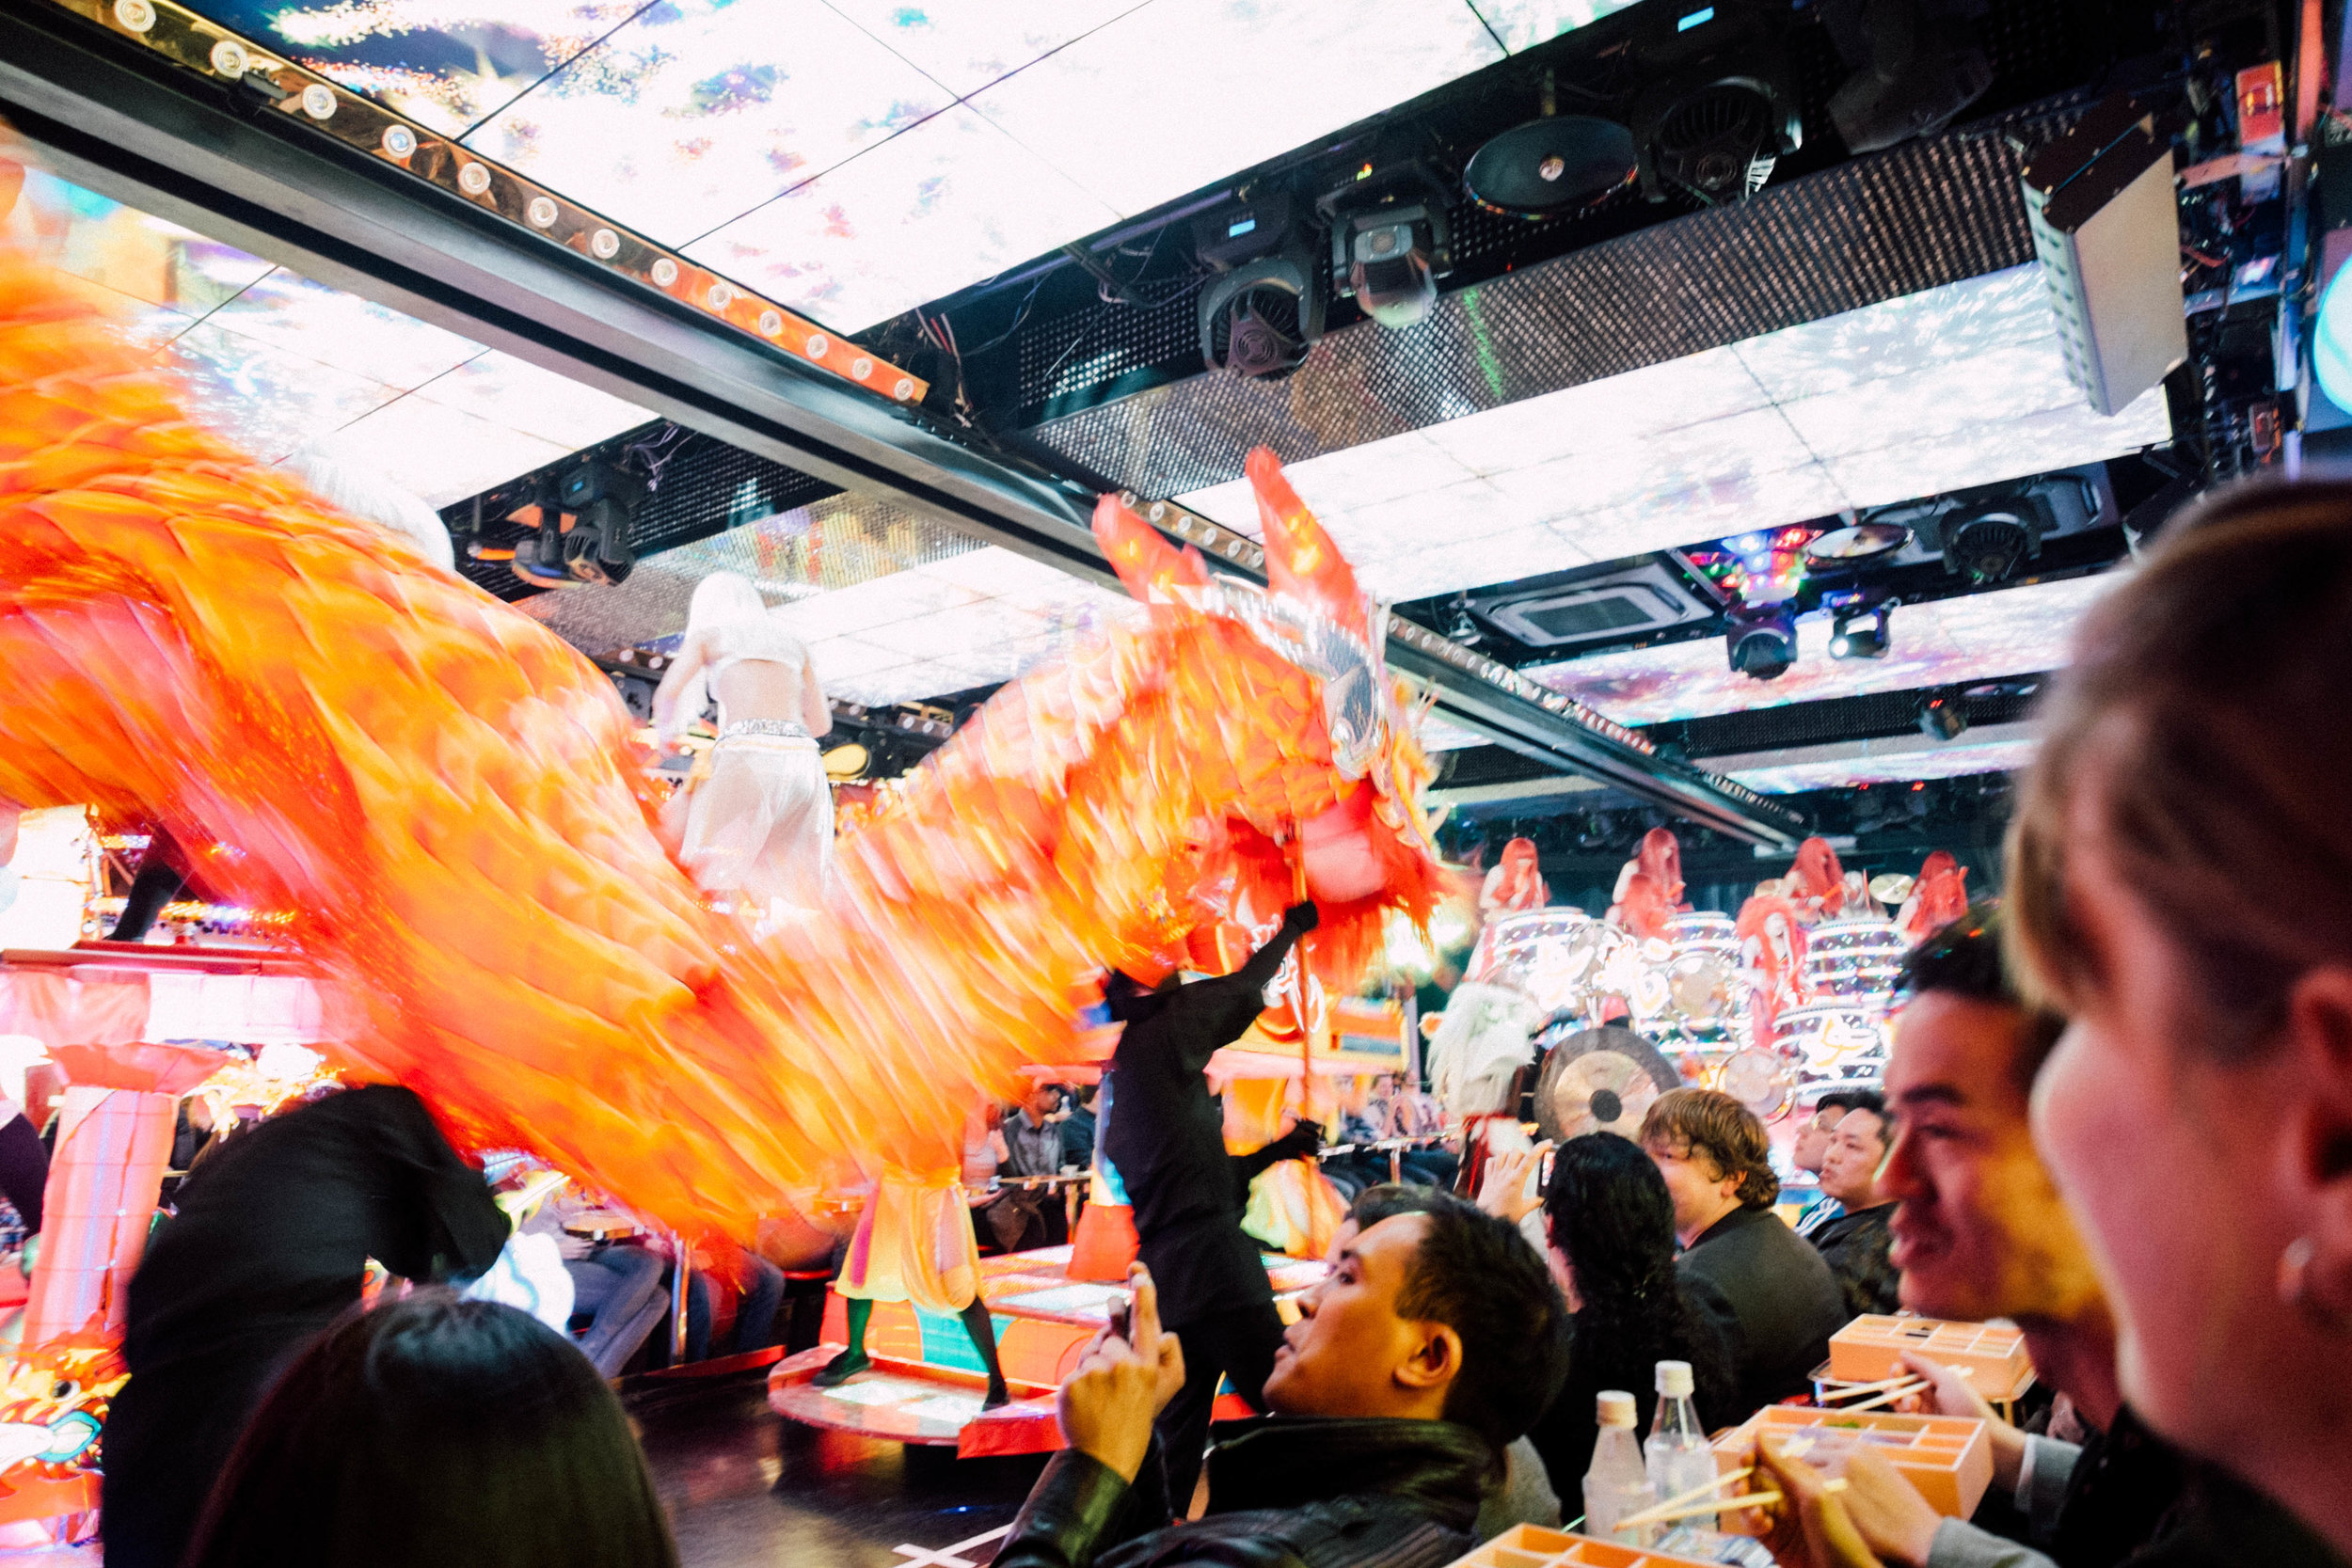 A dragon flies among the crowd, Robot Restaurant, Tokyo.